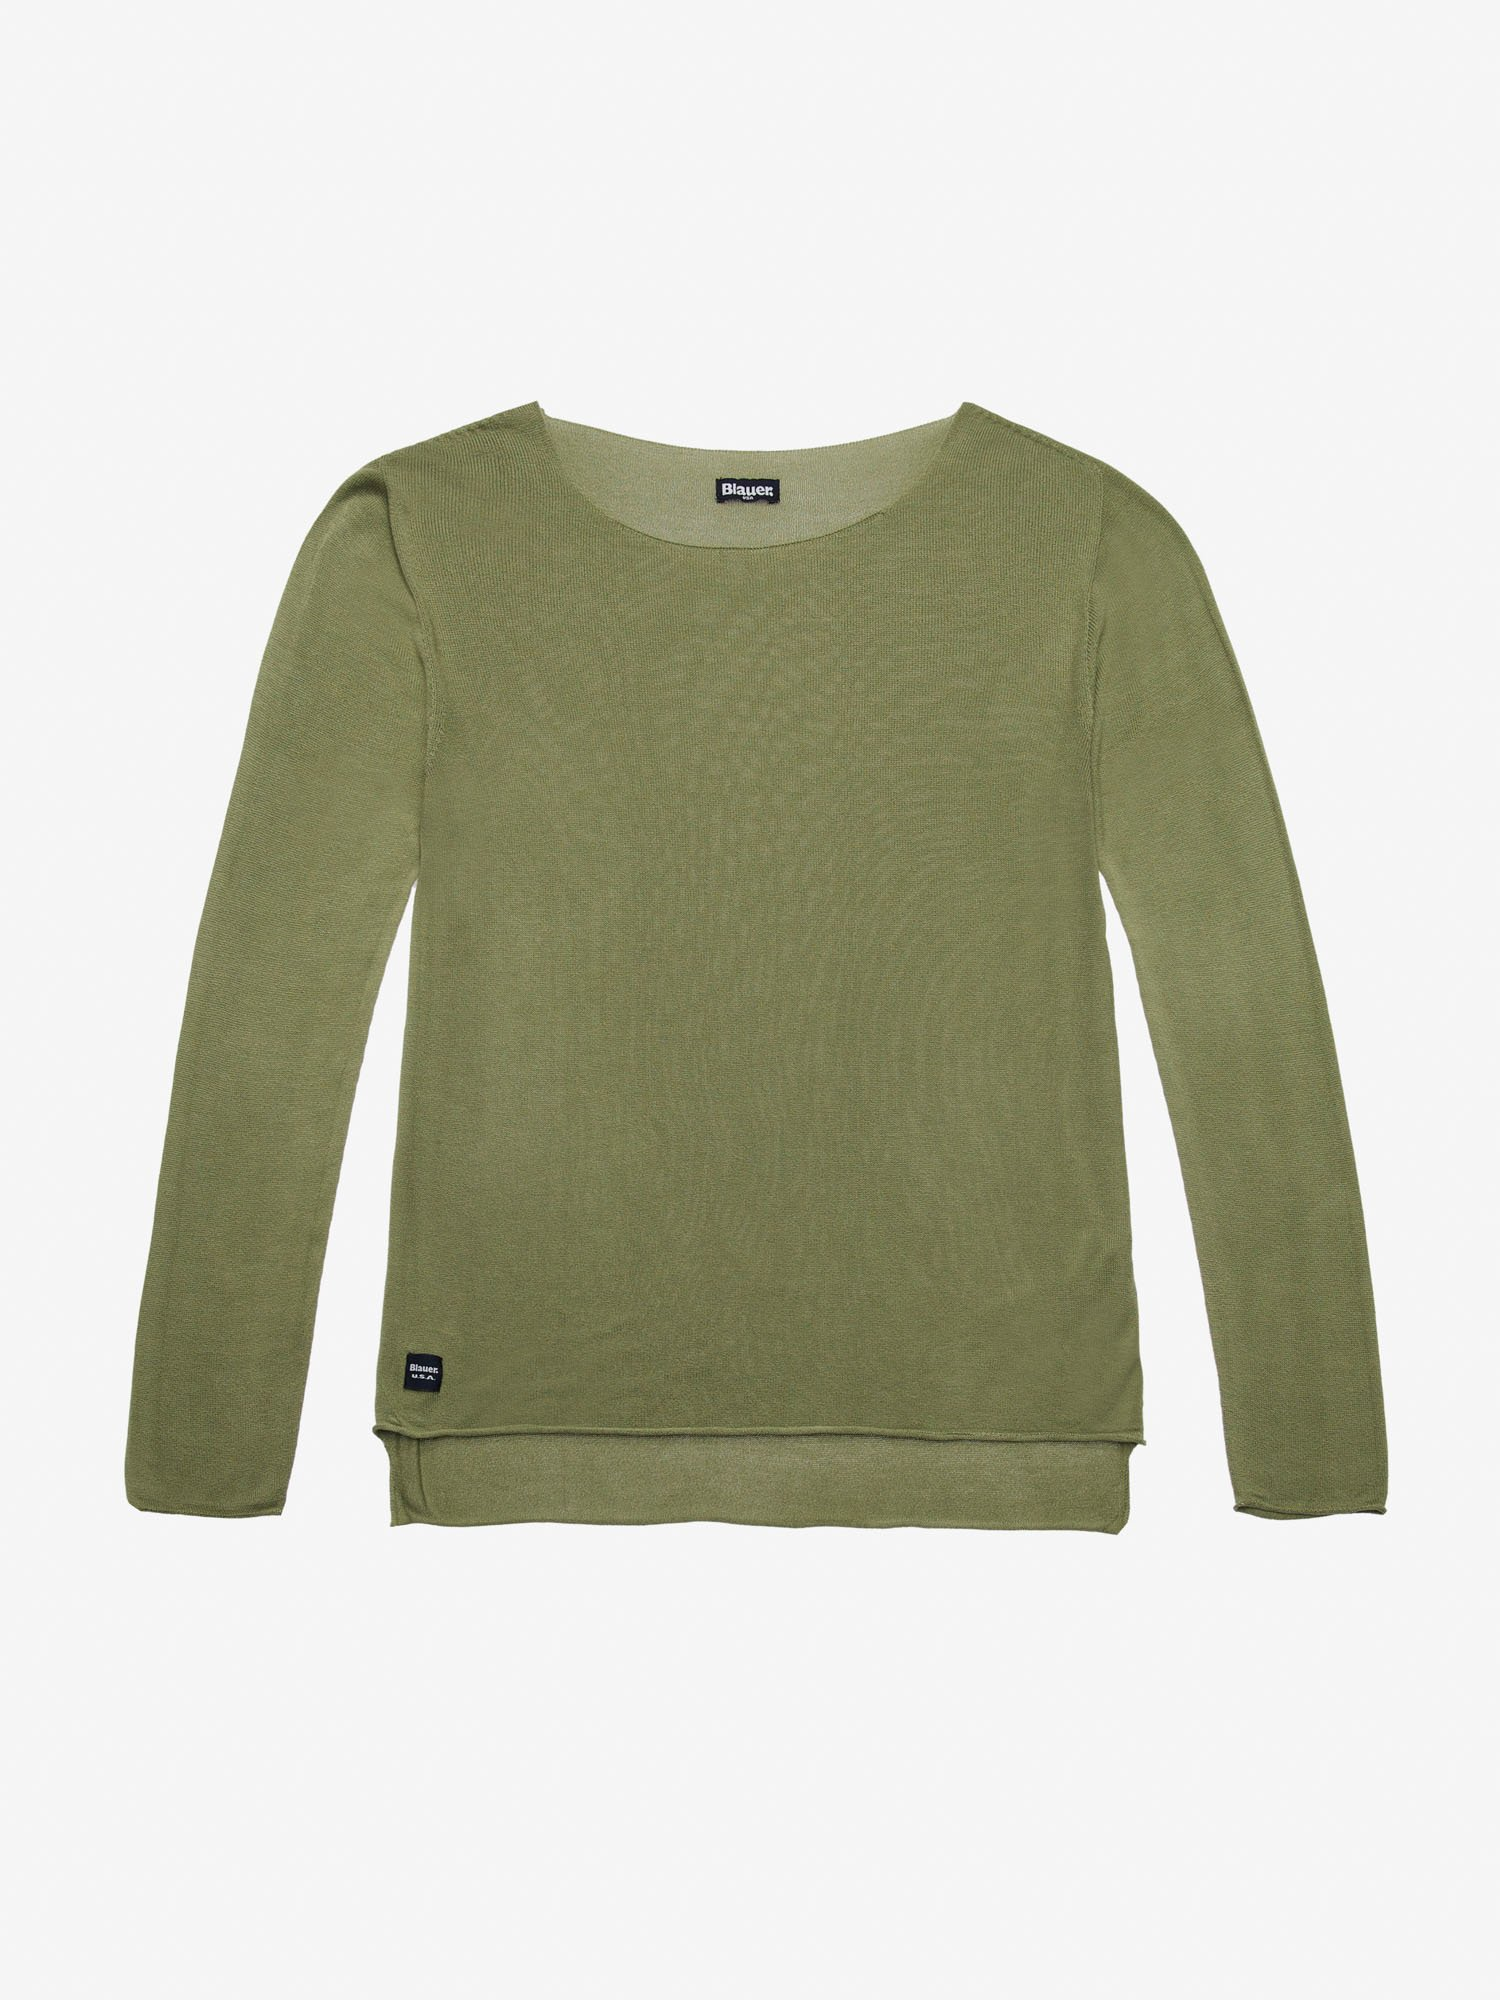 WOMEN'S WIDE NECKLINE SWEATER - Blauer